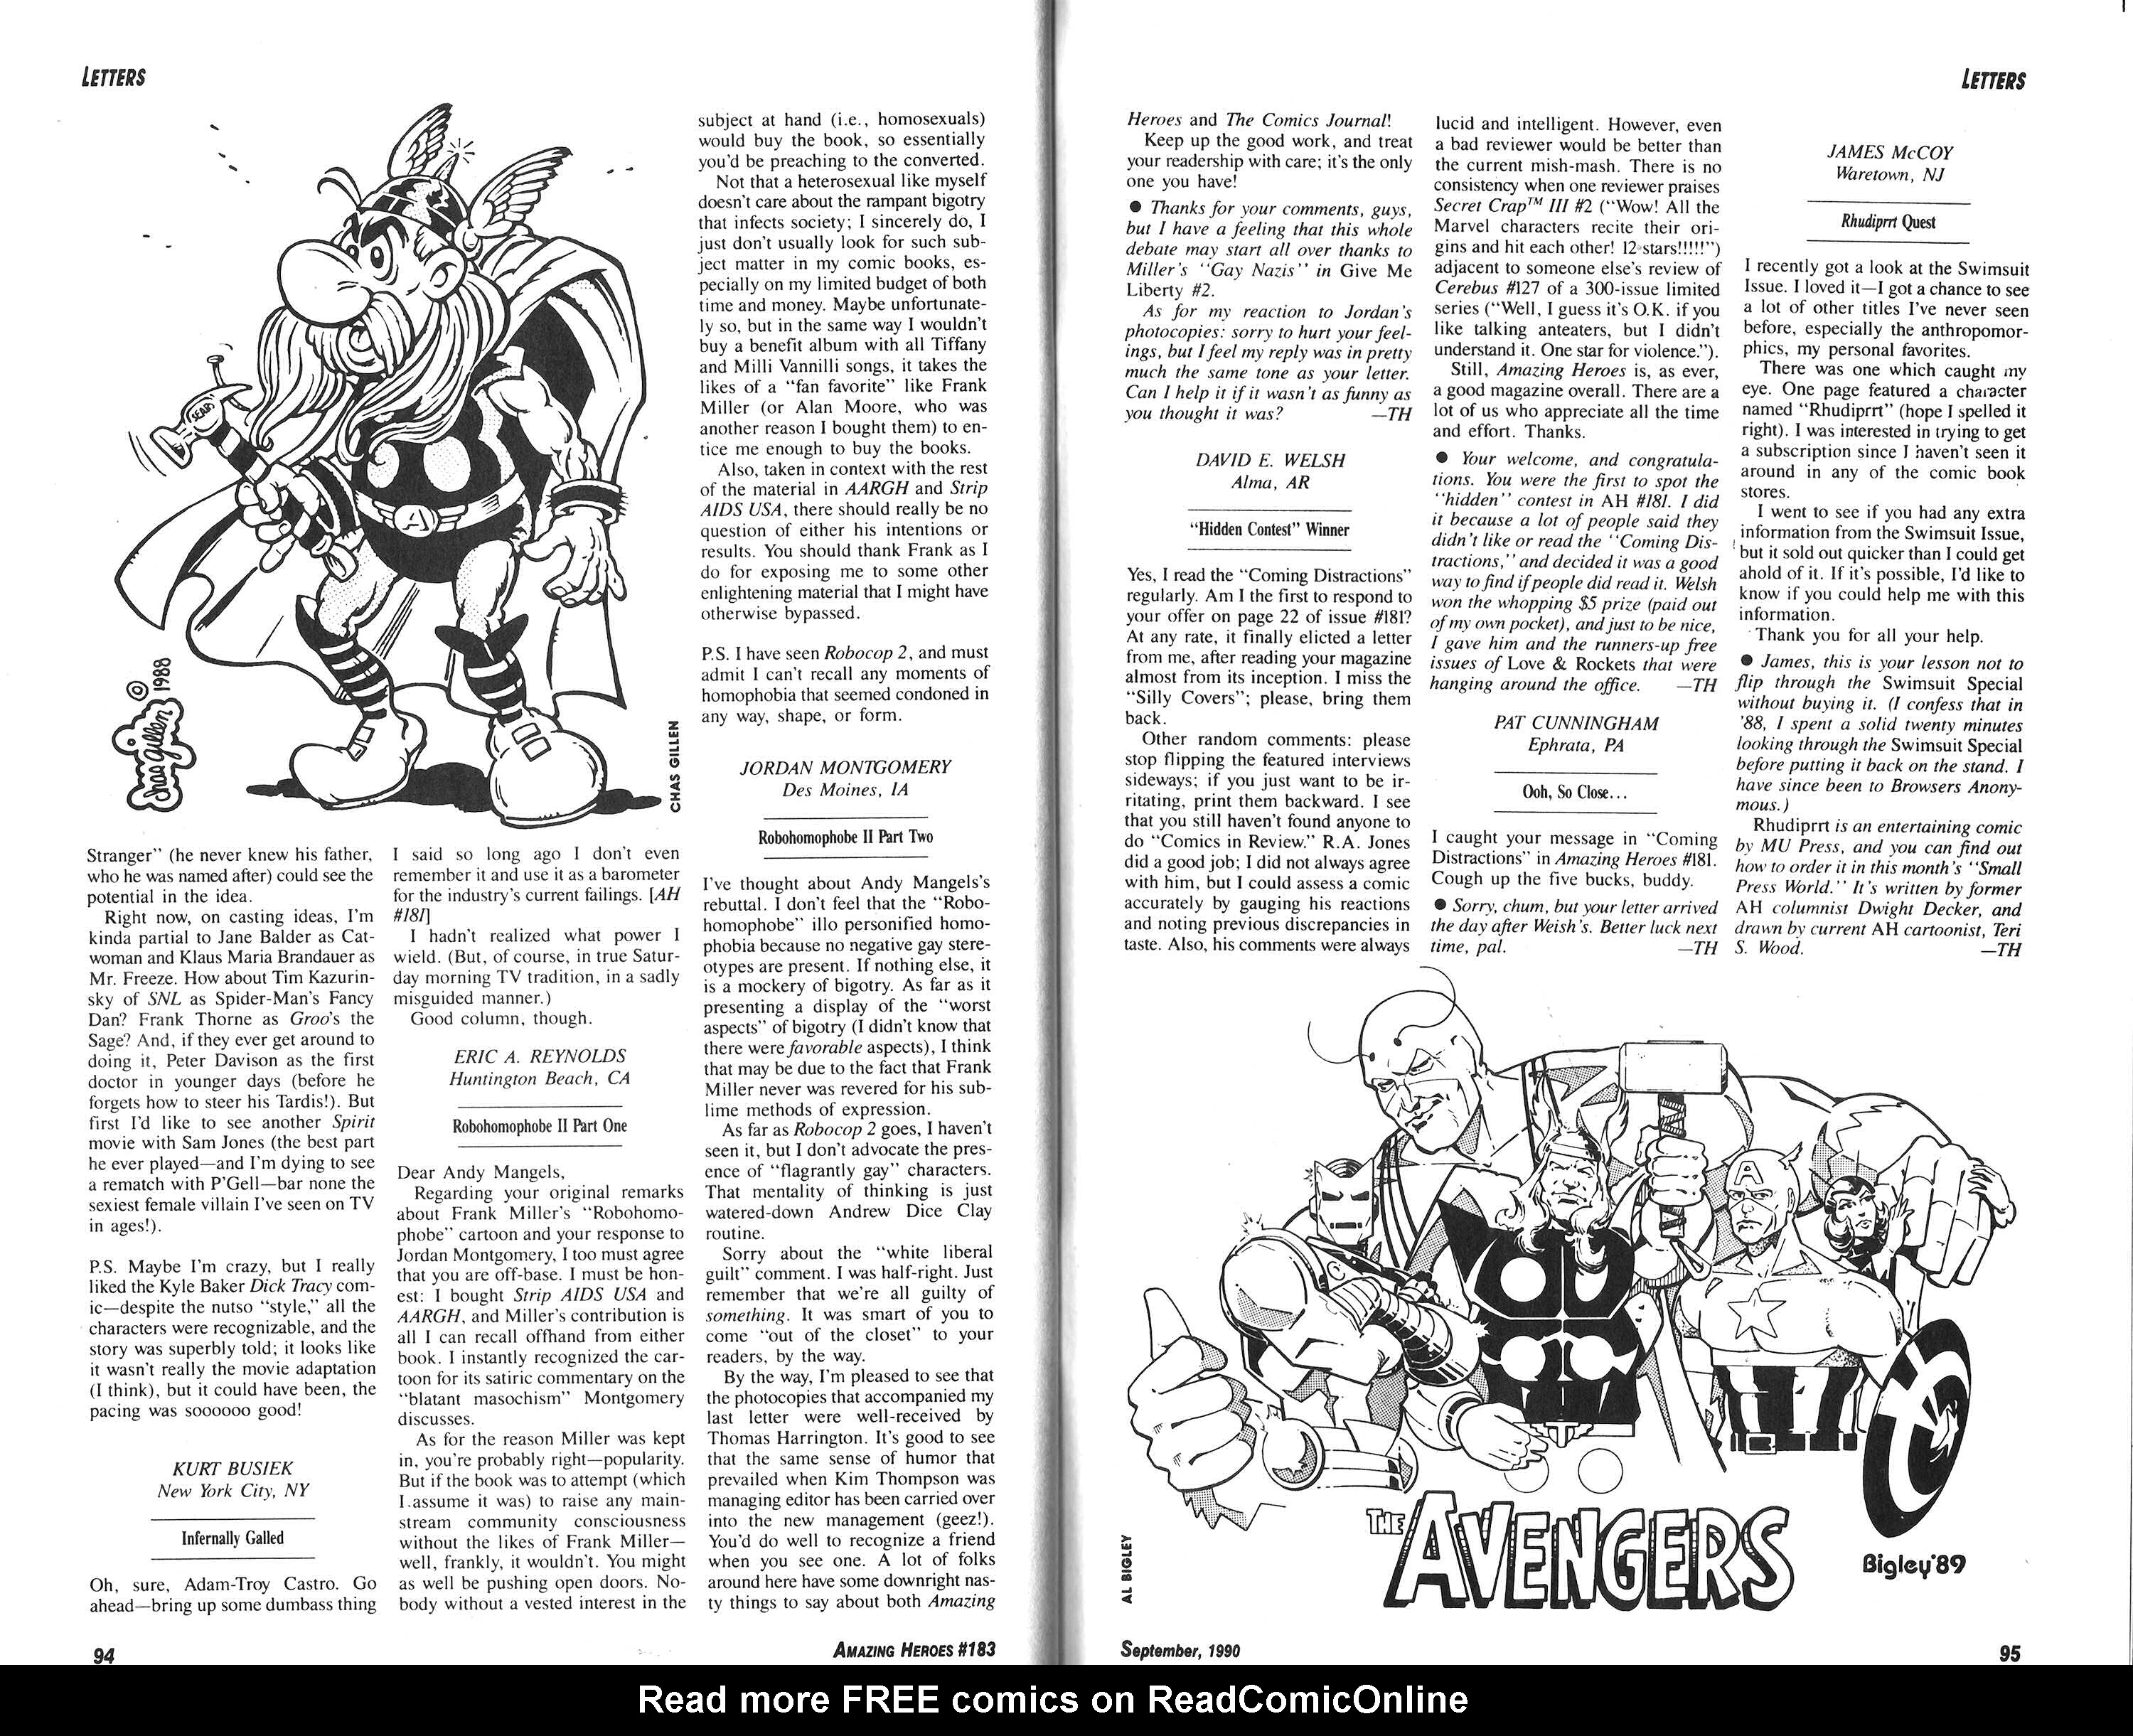 Read online Amazing Heroes comic -  Issue #183 - 48